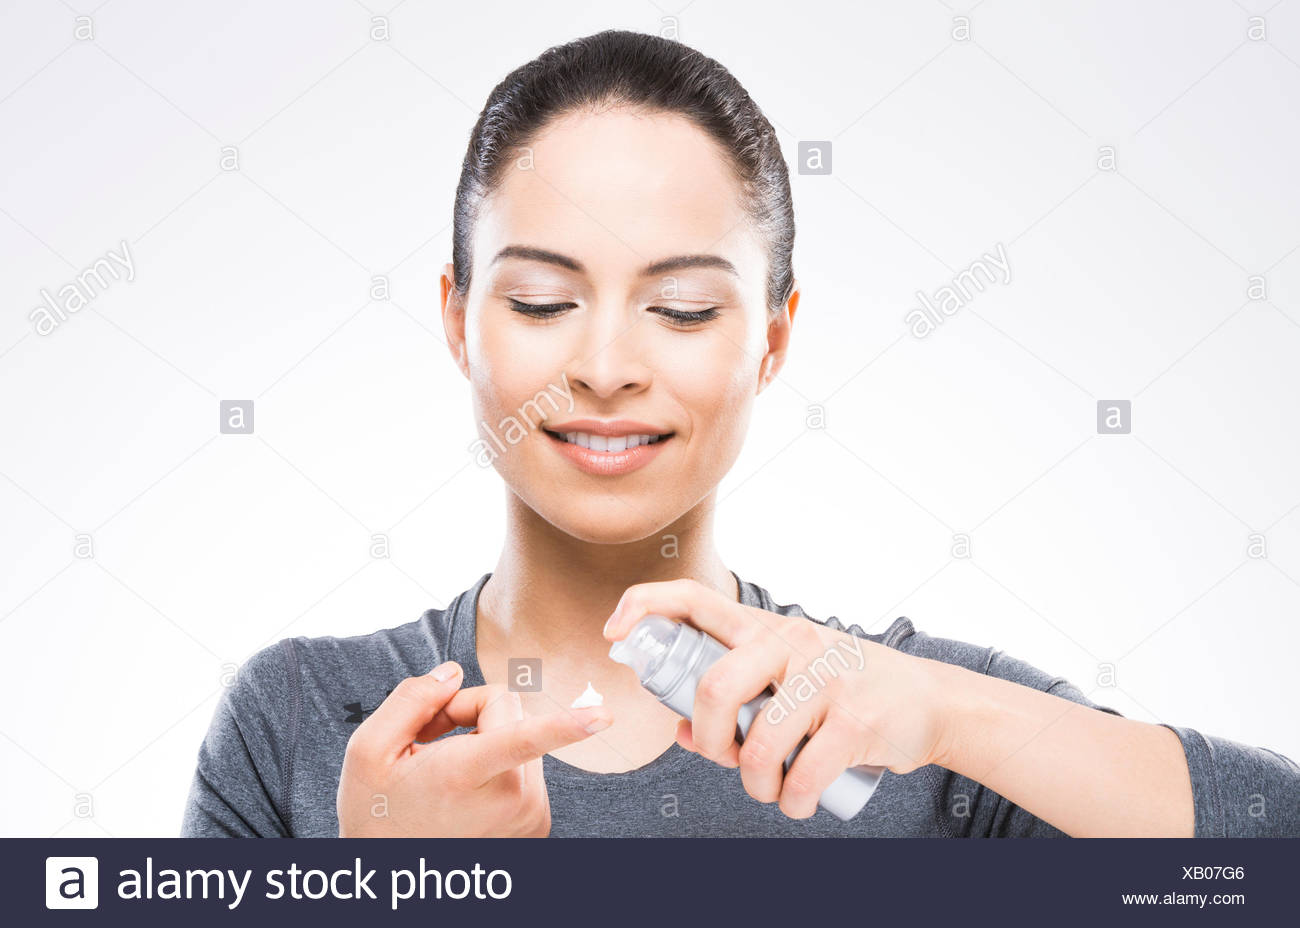 Young woman applying moisturizer - Stock Image